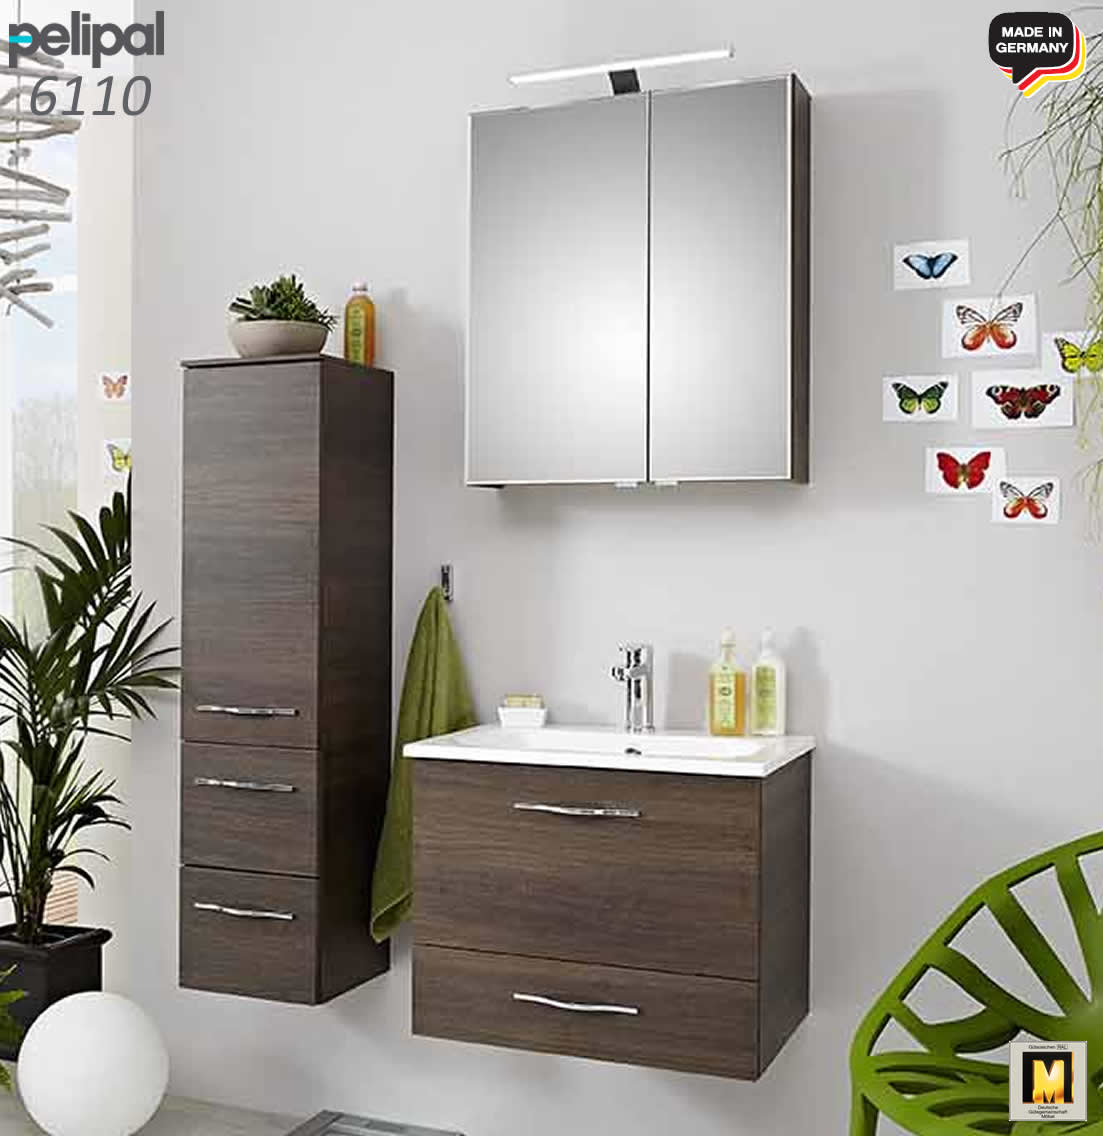 pelipal solitaire 6110 badm bel set 61 cm v1 2 impuls home. Black Bedroom Furniture Sets. Home Design Ideas